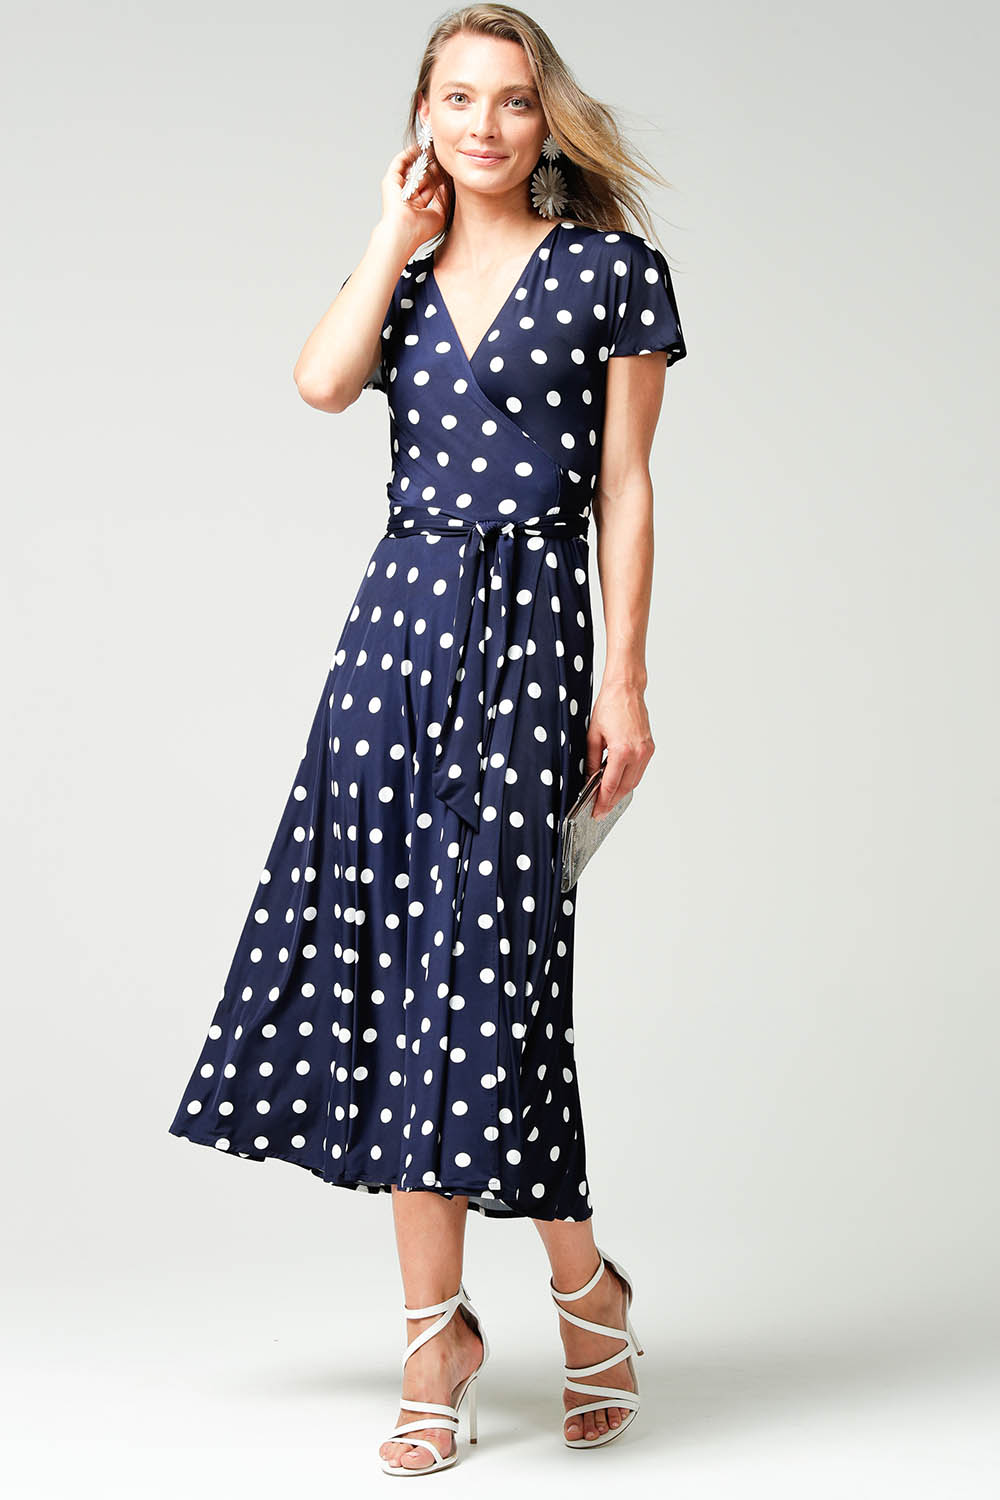 Vintage Polka Dot Dresses – 50s Spotty and Ditsy Prints Reverse Wrap Midi Fluted Sleeve Dress AUD 279.00 AT vintagedancer.com